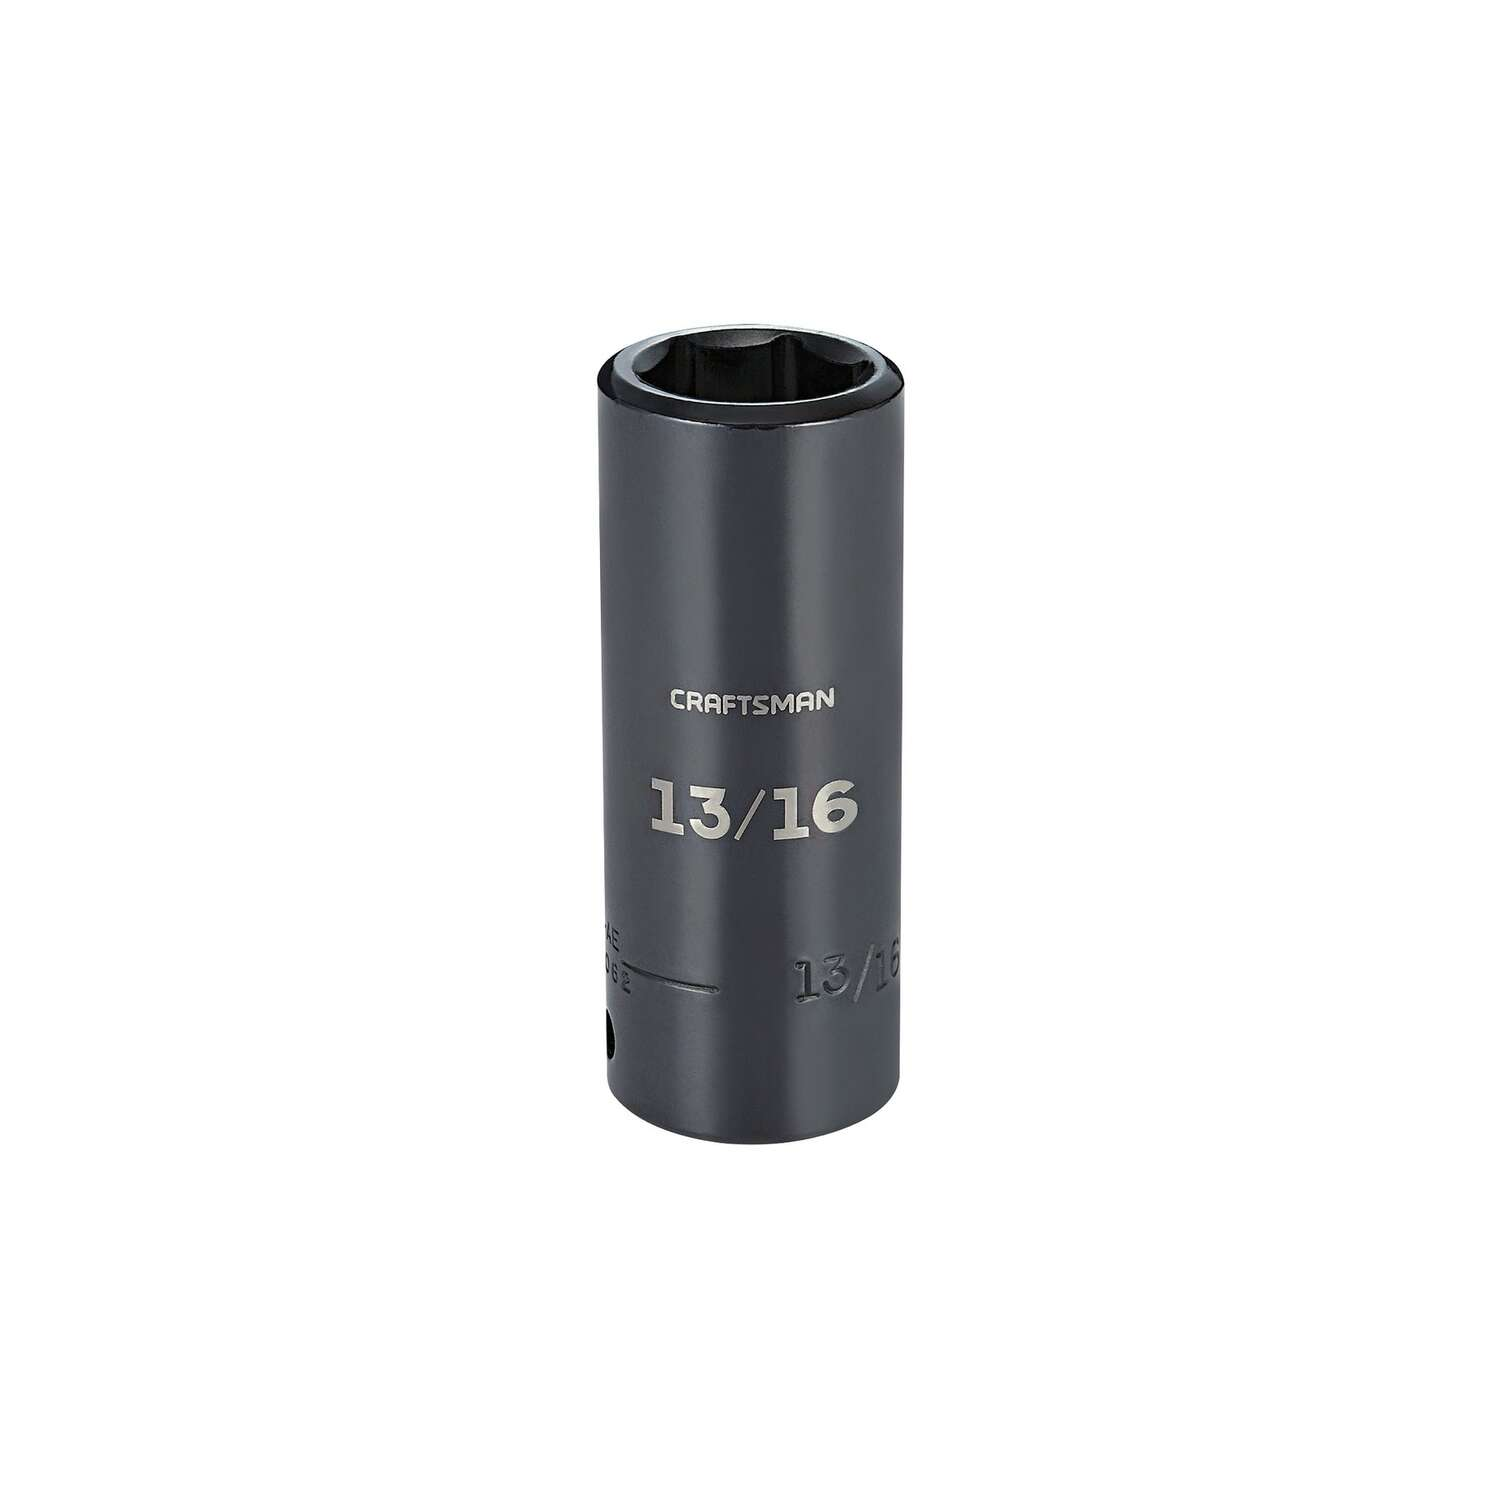 Craftsman 13/16 in. x 1/2 in. drive SAE 6 Point Deep Impact Socket 1 pc.